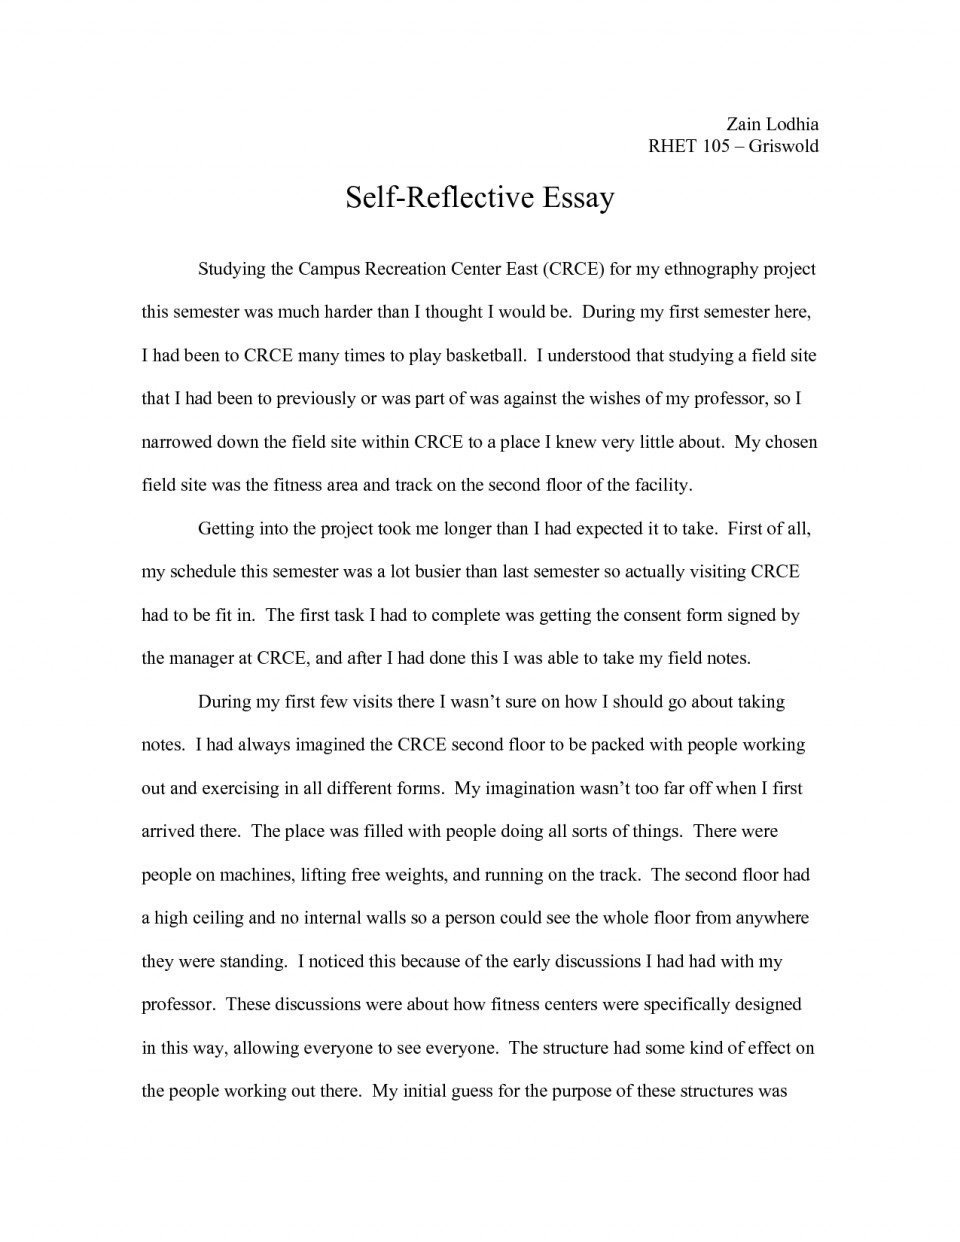 003 Qal0pwnf46 Reflective Essays Beautiful Essay Examples Writing Pdf College Sample 960